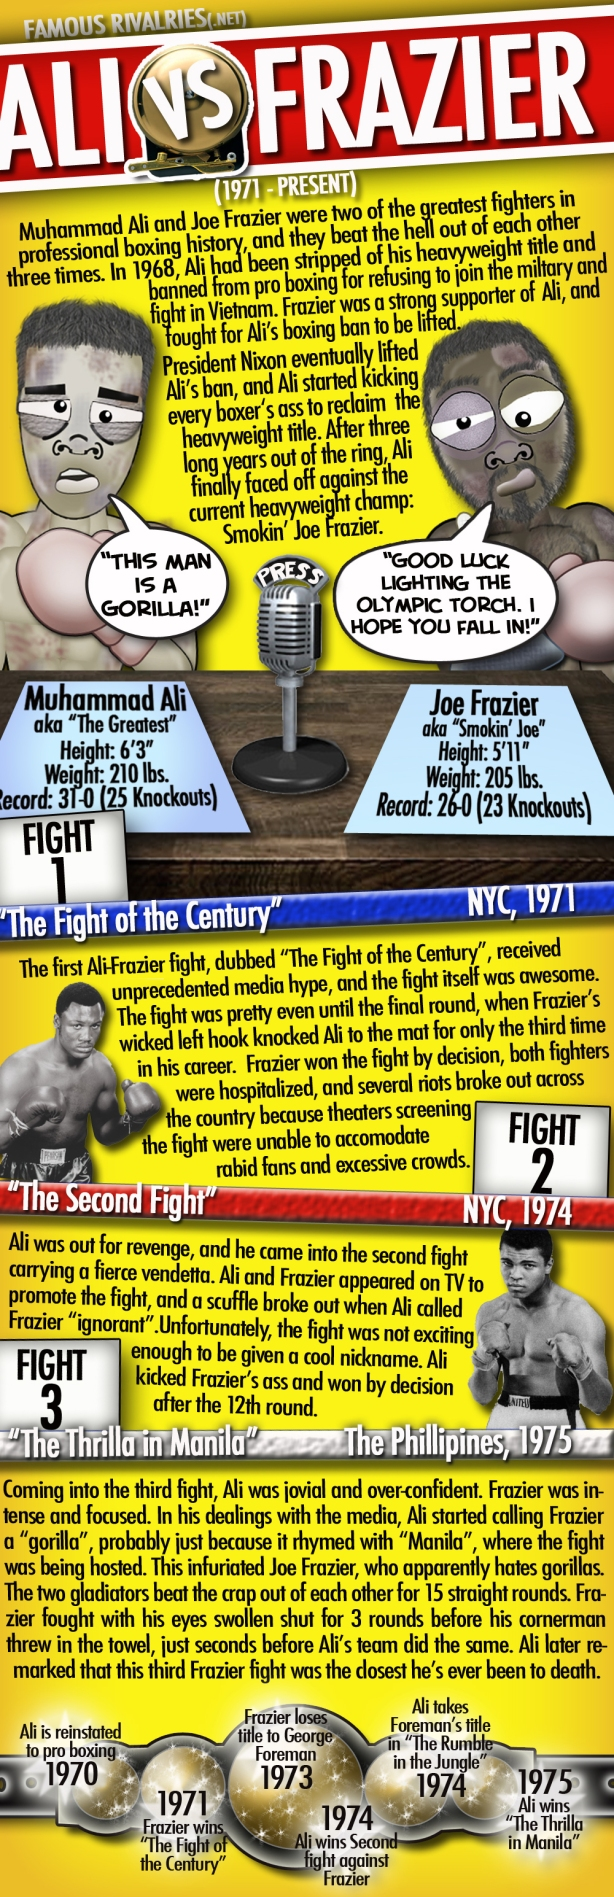 Famous Rivalries Muhammad Ali Joe Frazier Ali vs Frazier Thrilla in Manila Fight of the Century